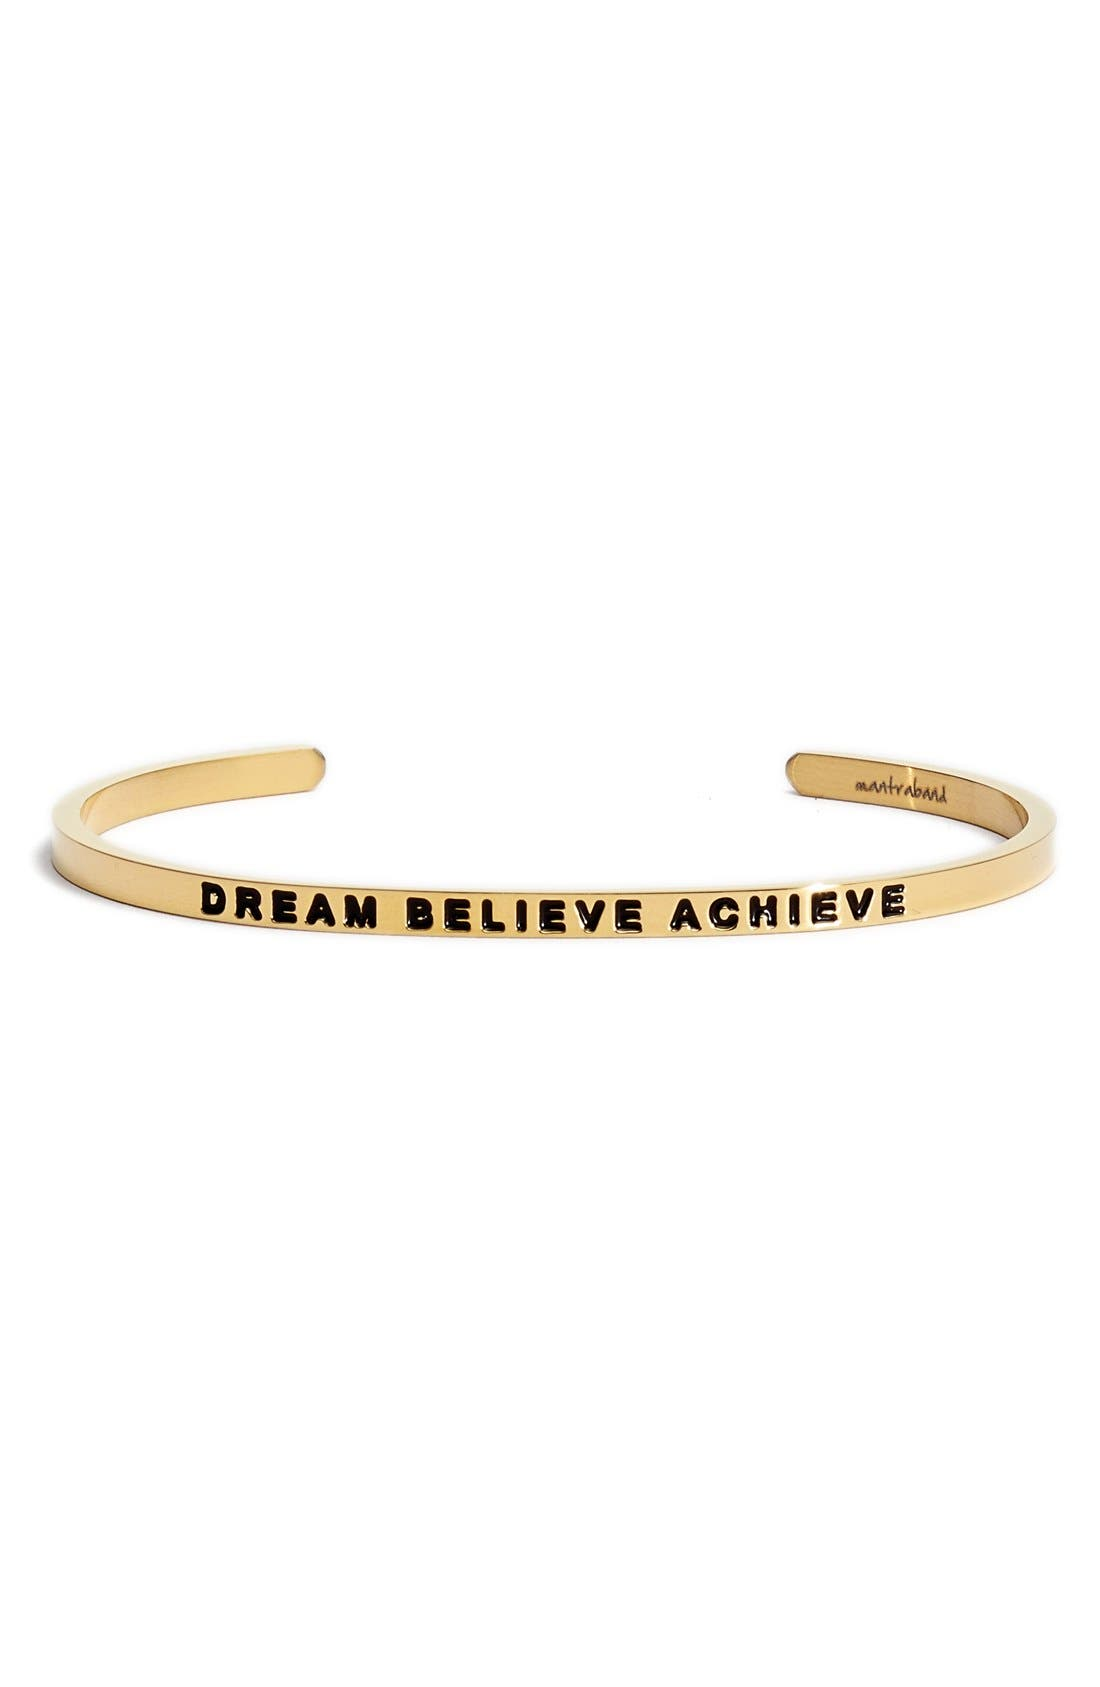 MantraBand® 'Dream Believe Achieve' Cuff